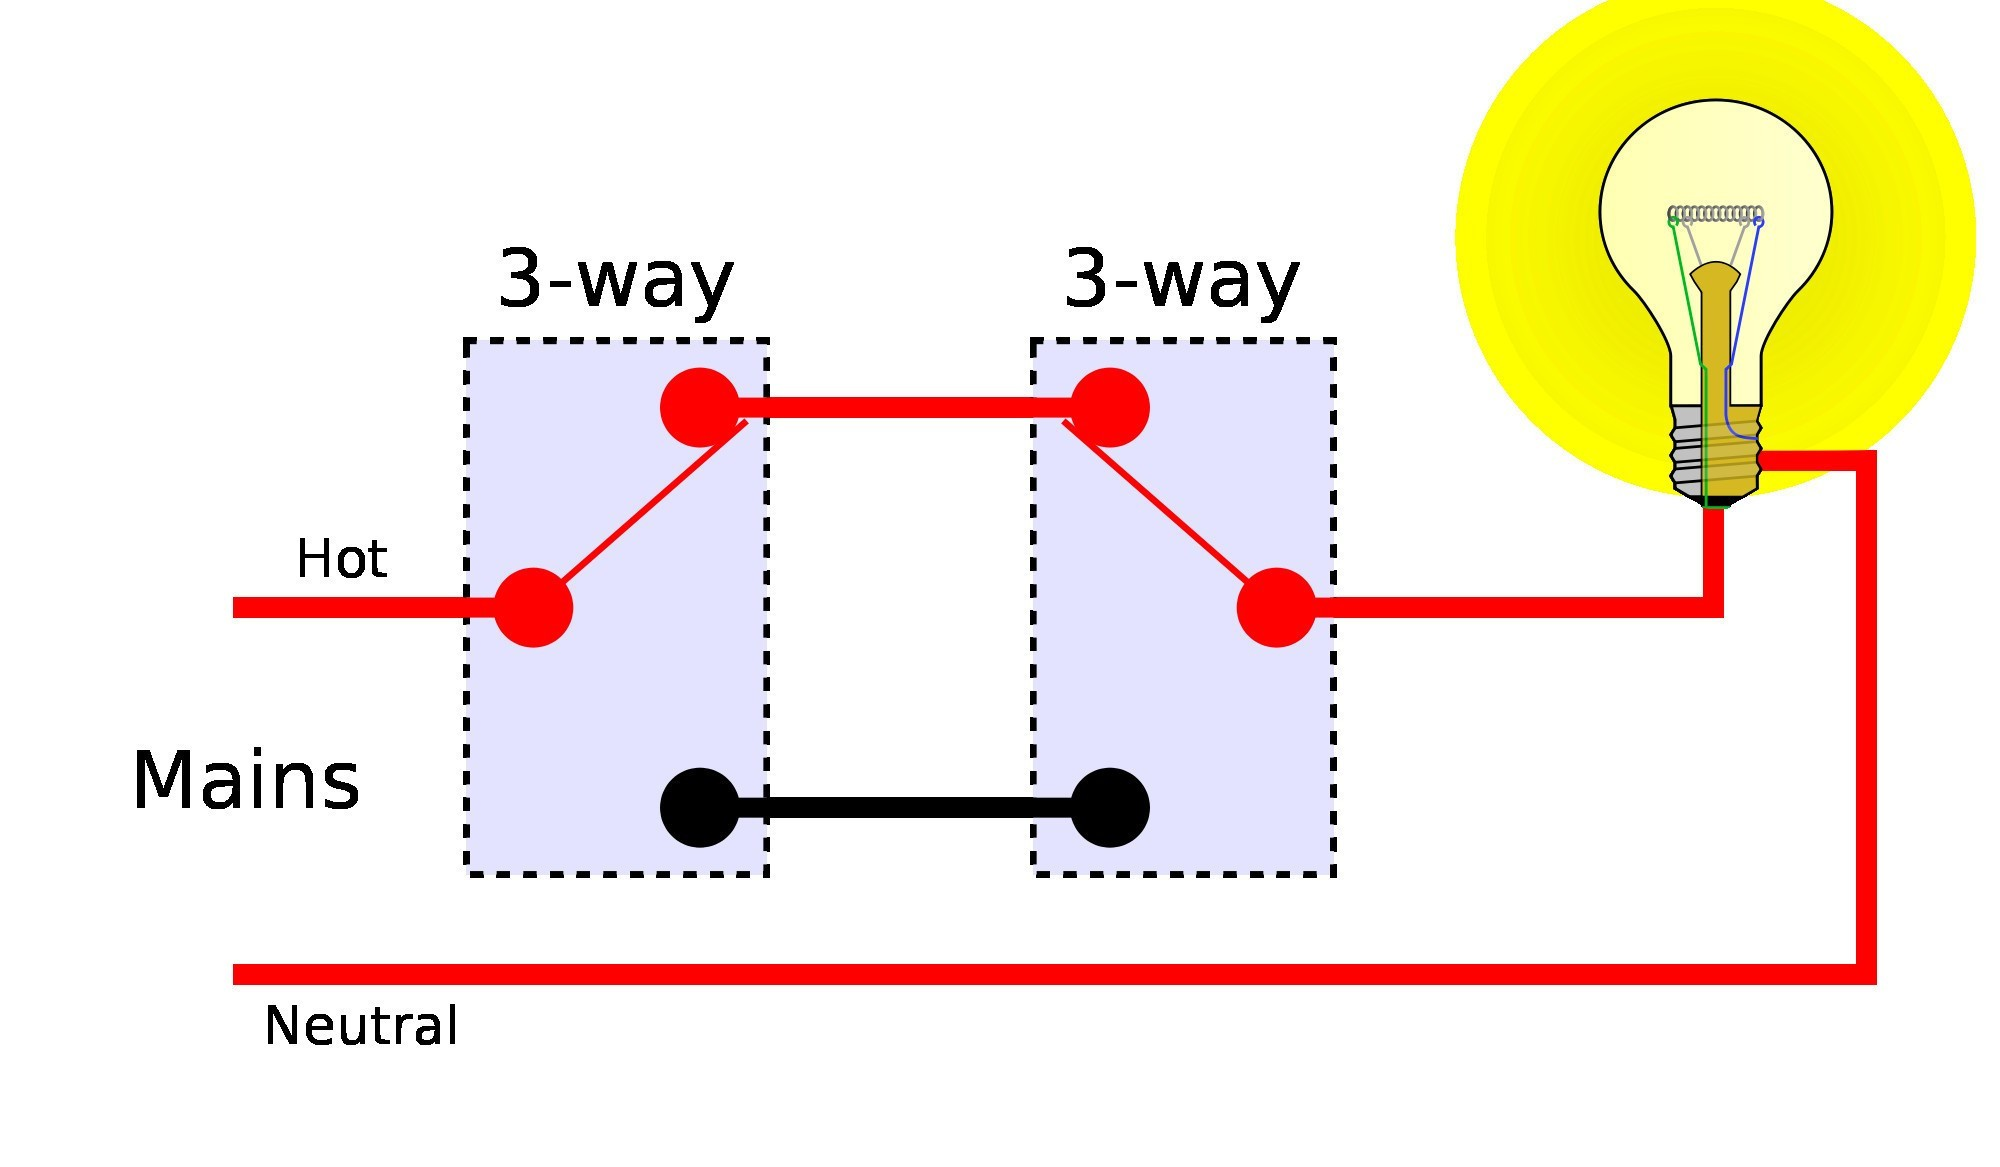 Wiring Diagram for Two Way Switch e Light Valid Wiring Diagram for 3 Way Switches Multiple